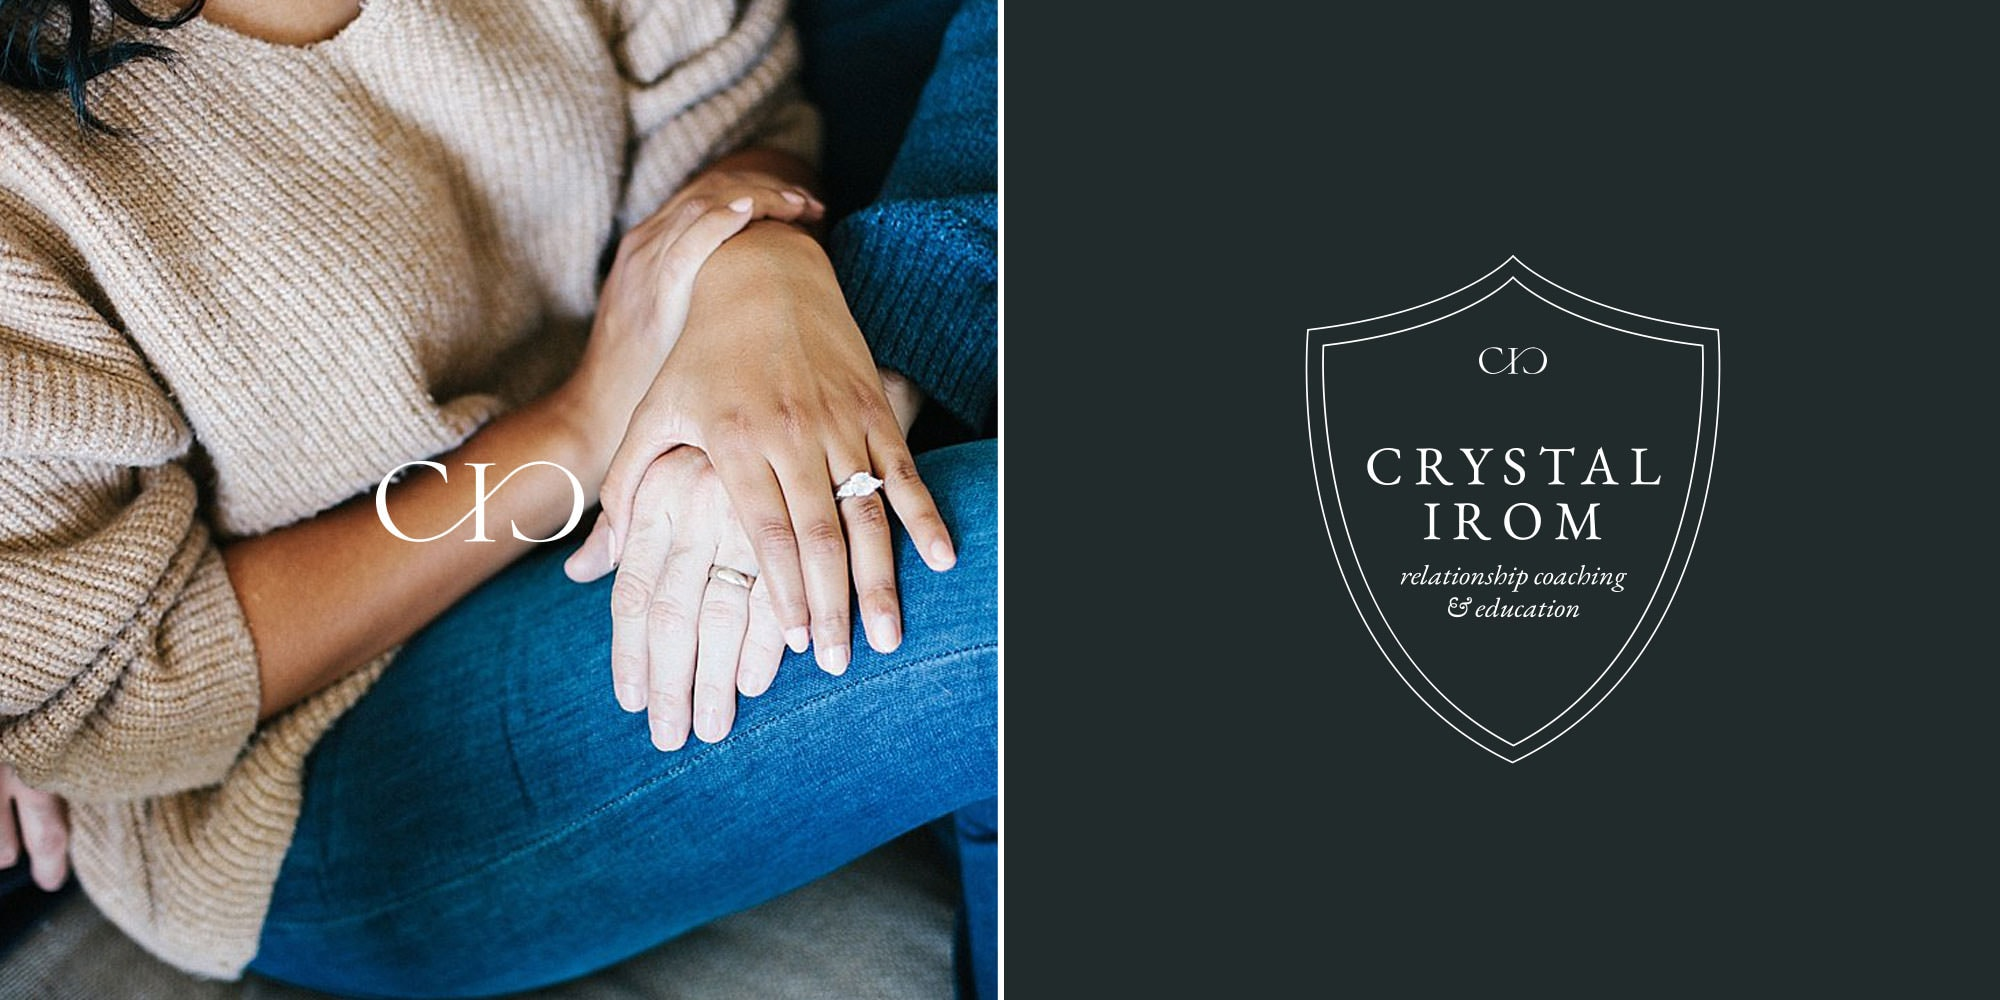 Custom crest brand and logo design for Crystal Irom by Davey & Krista